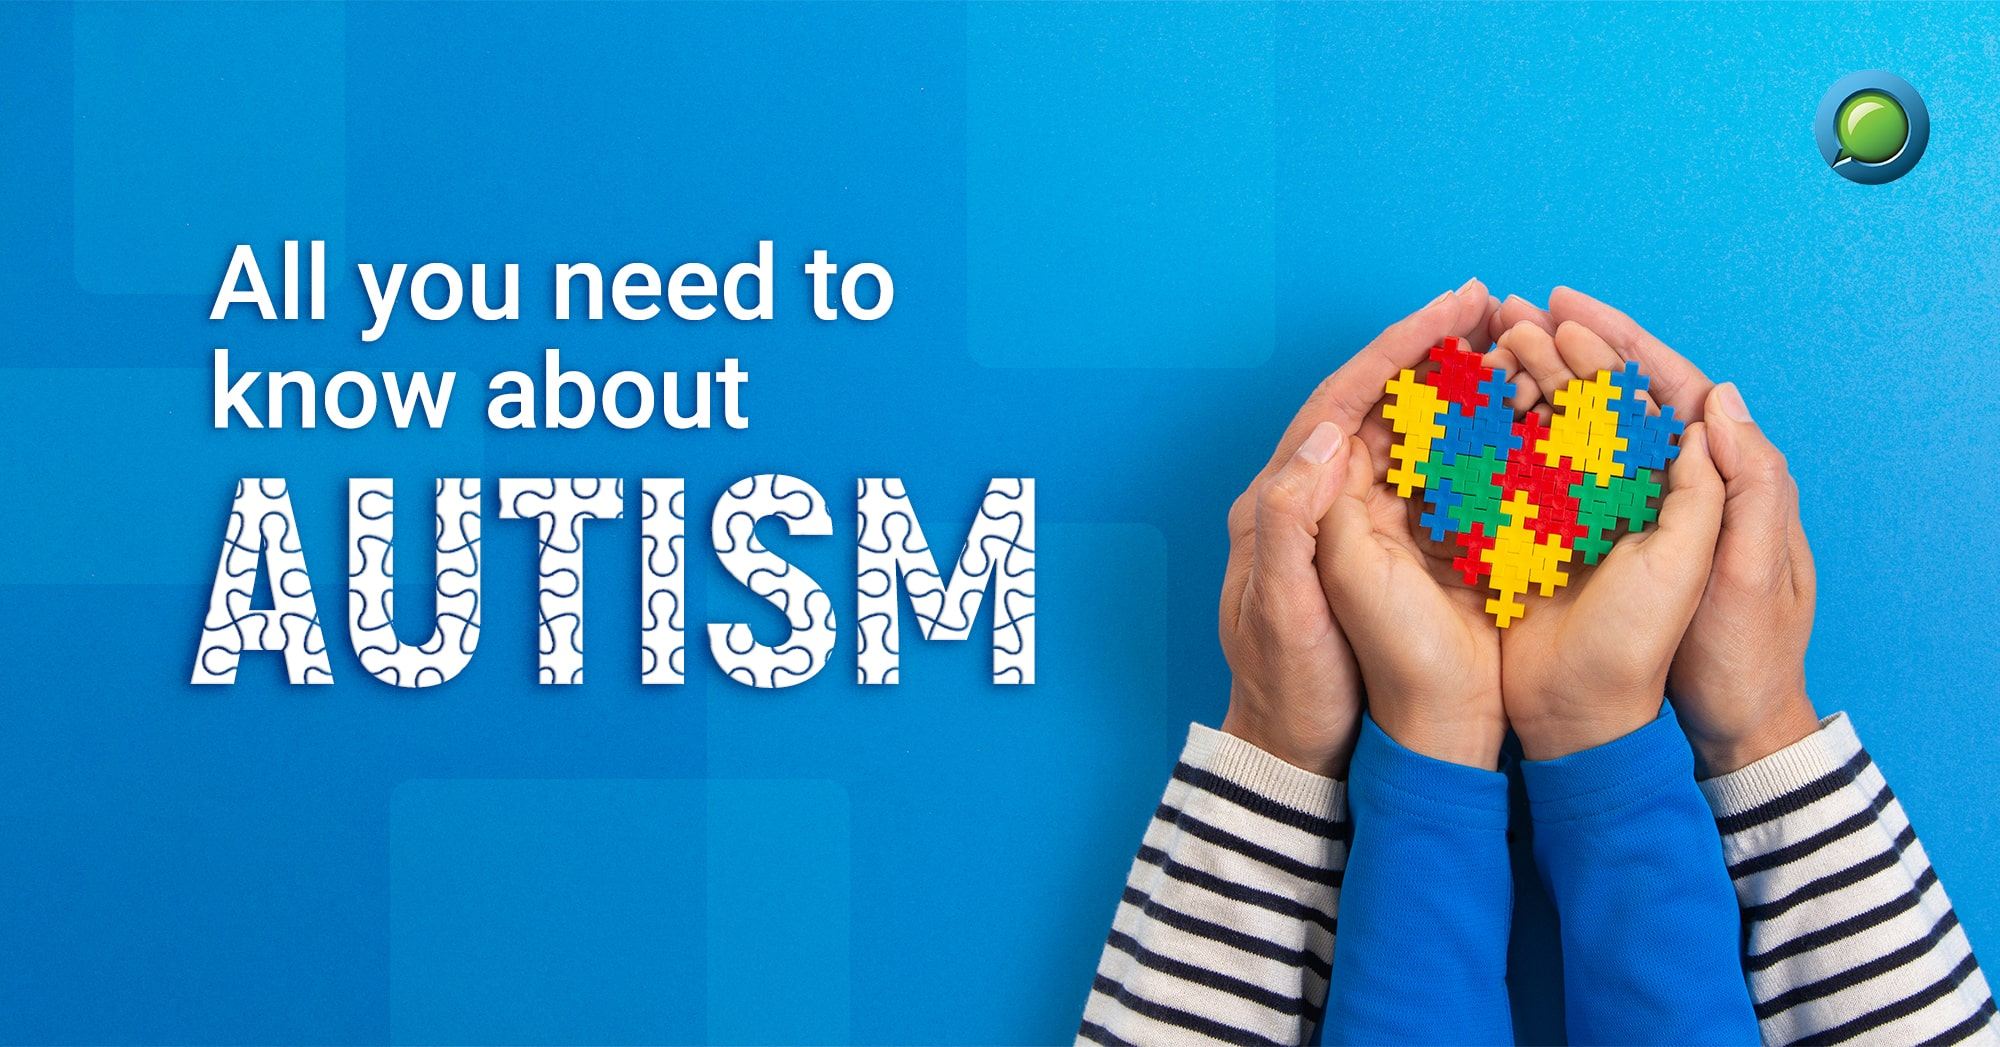 Autism: All you need to know